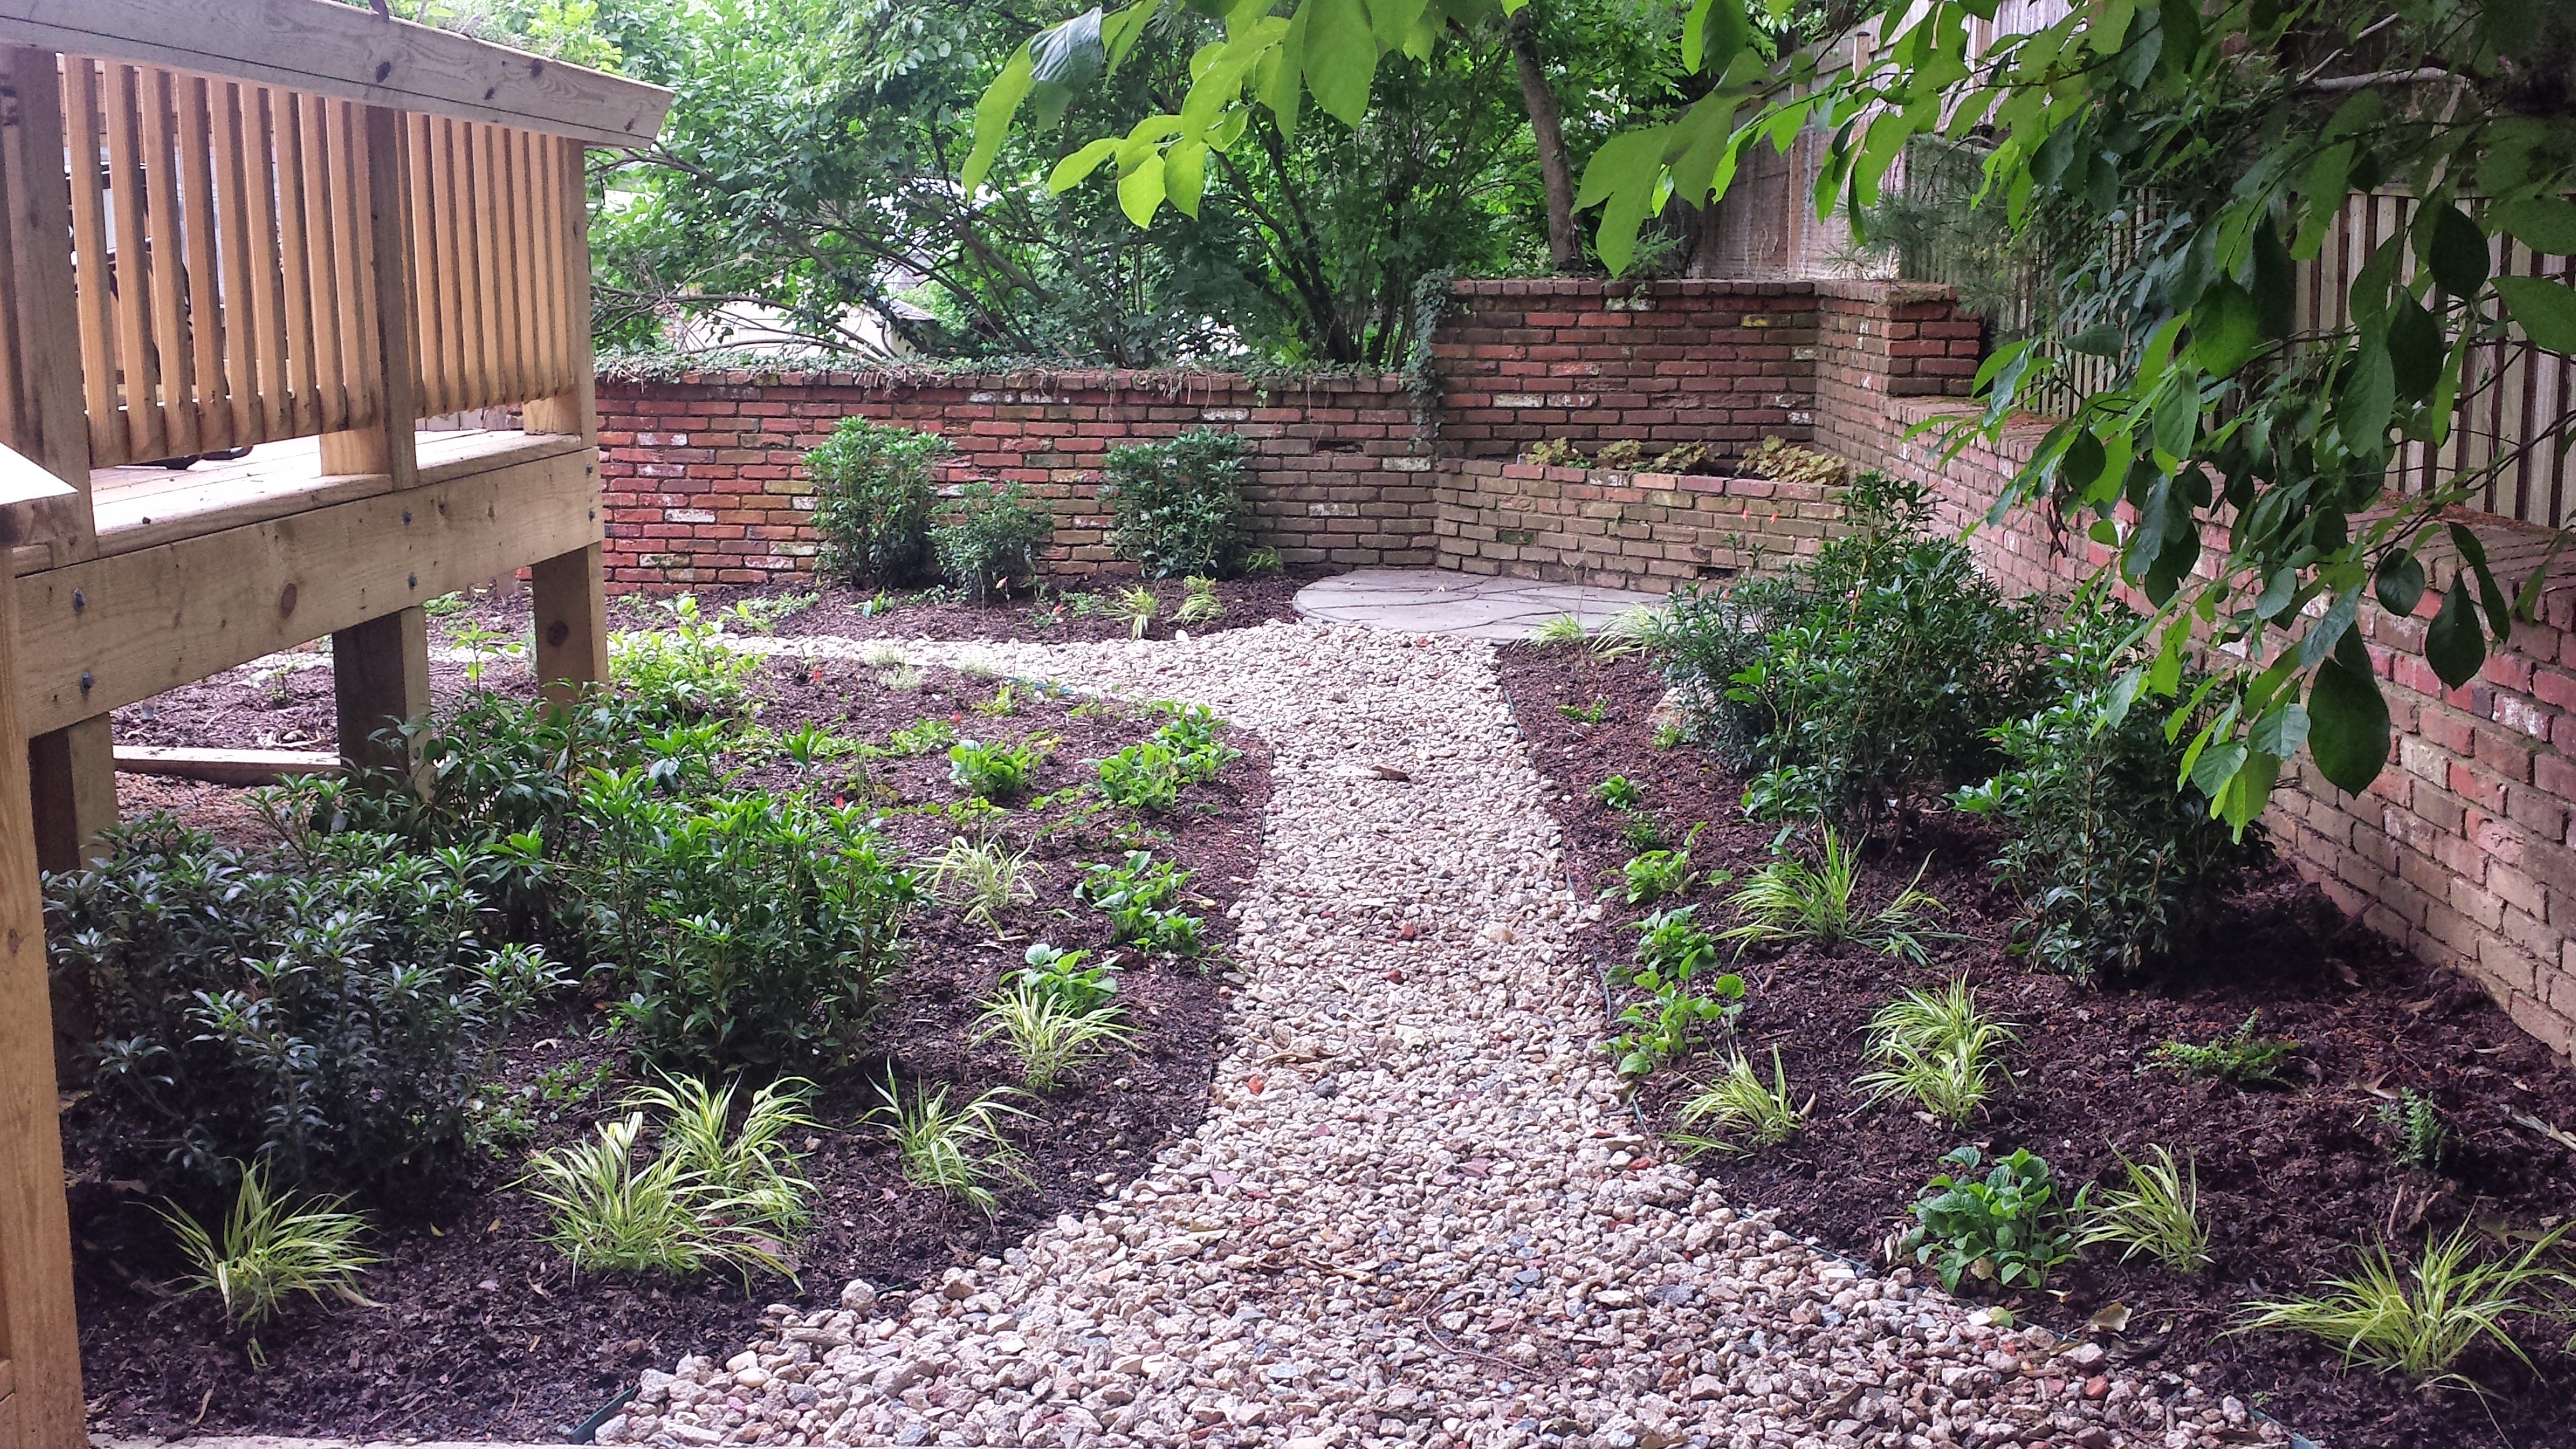 Backyard native landscaping with gravel path